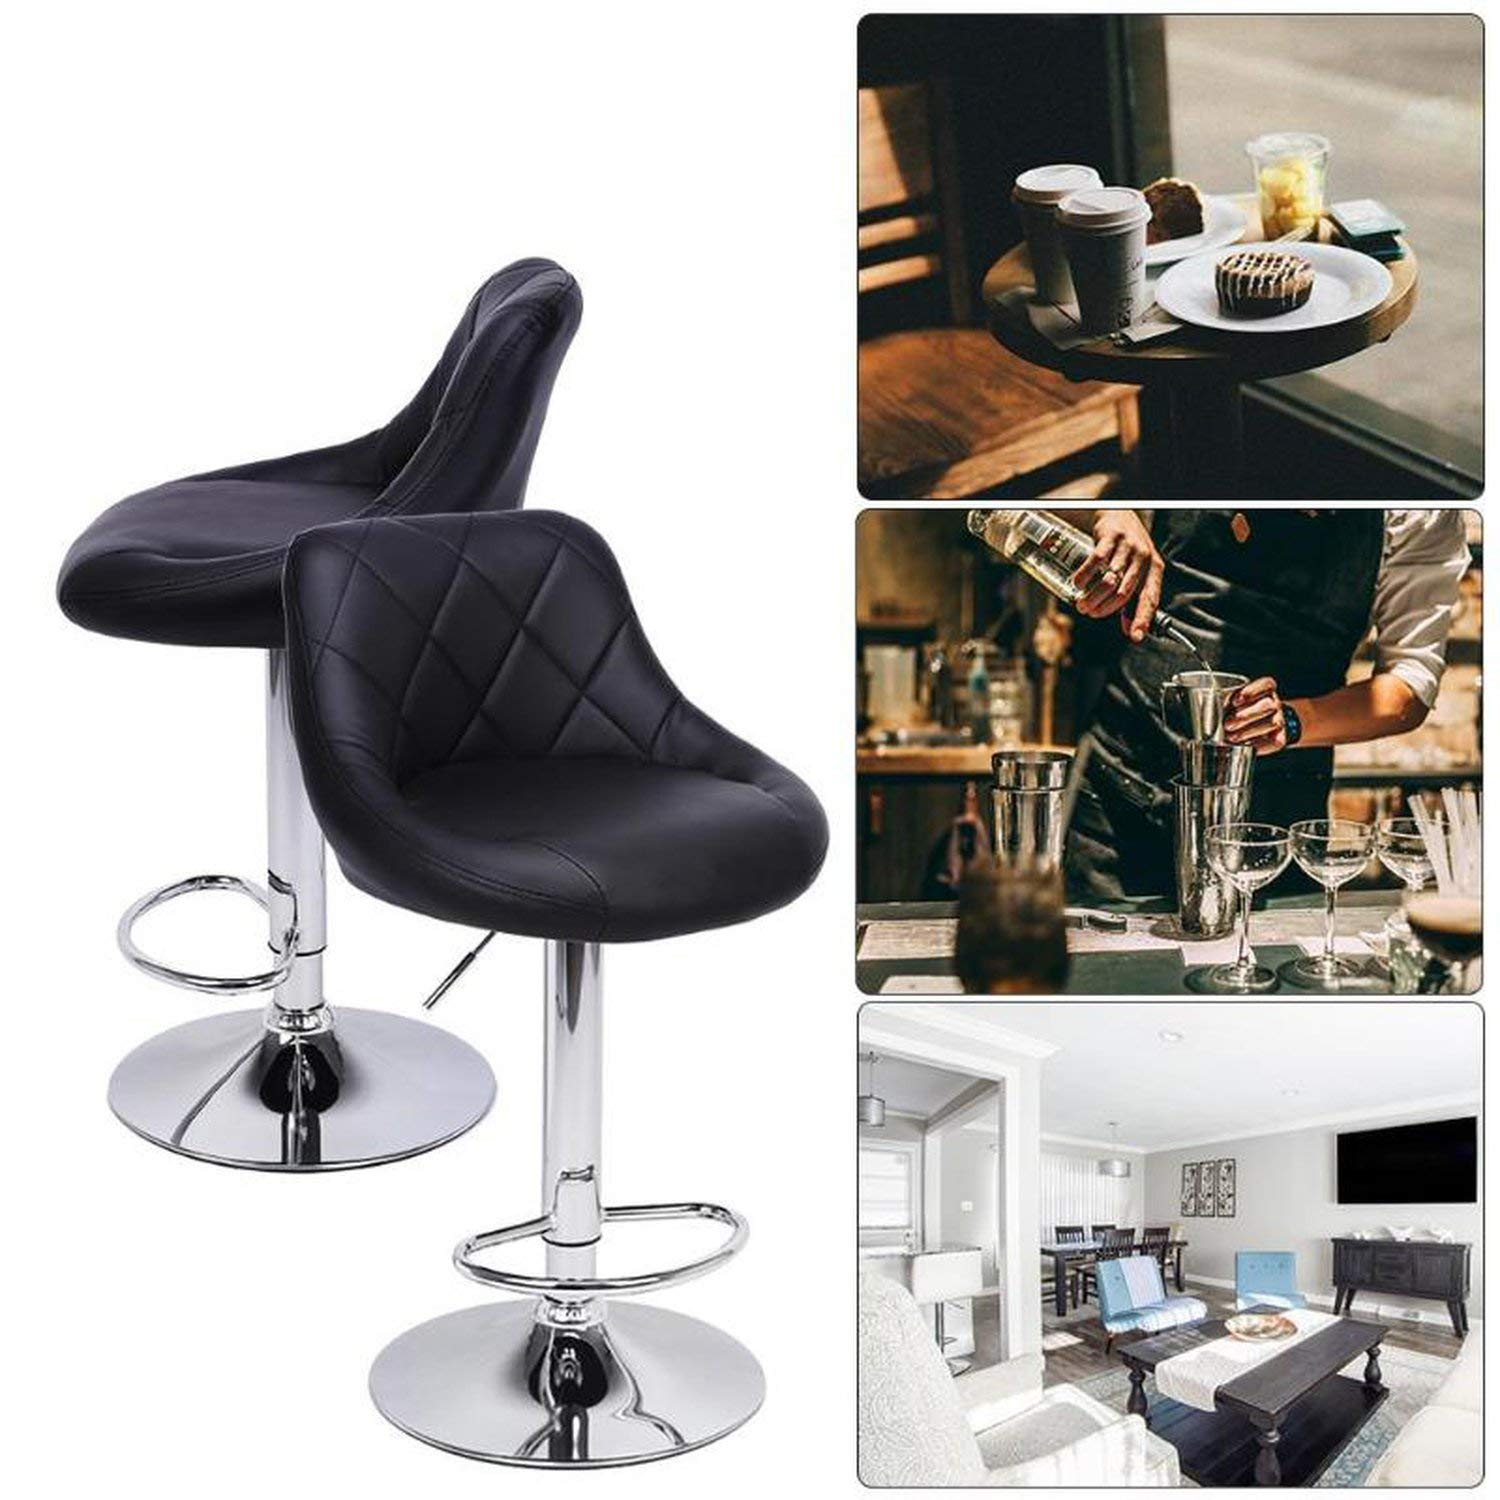 2pcs Modern Adjustable Backrest Bar Chairs 360 Degree Rotation Seat Stool Restaurants Living Room Office Cafe Furniture Kit Furniture